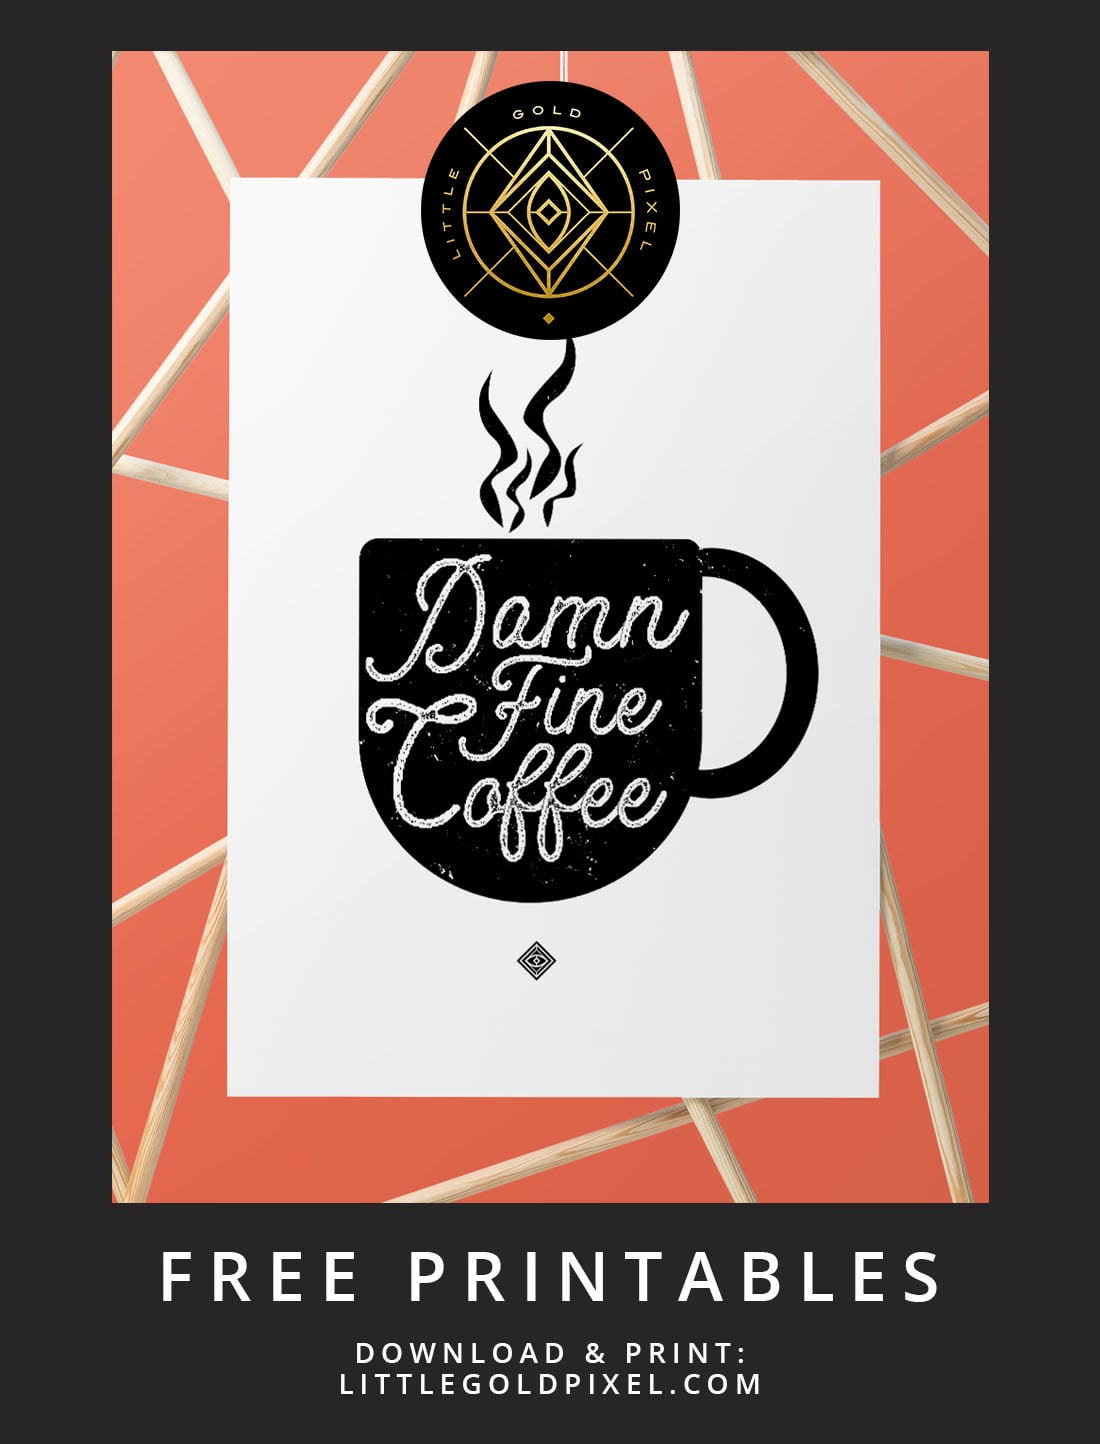 Damn Fine Coffee Free Printable •Little Gold Pixel • Download this Twin Peaks inspired free printable as part of my Freebie Friday series. Instant wall art! Bonus: watch the time-lapse video to see how I made it.